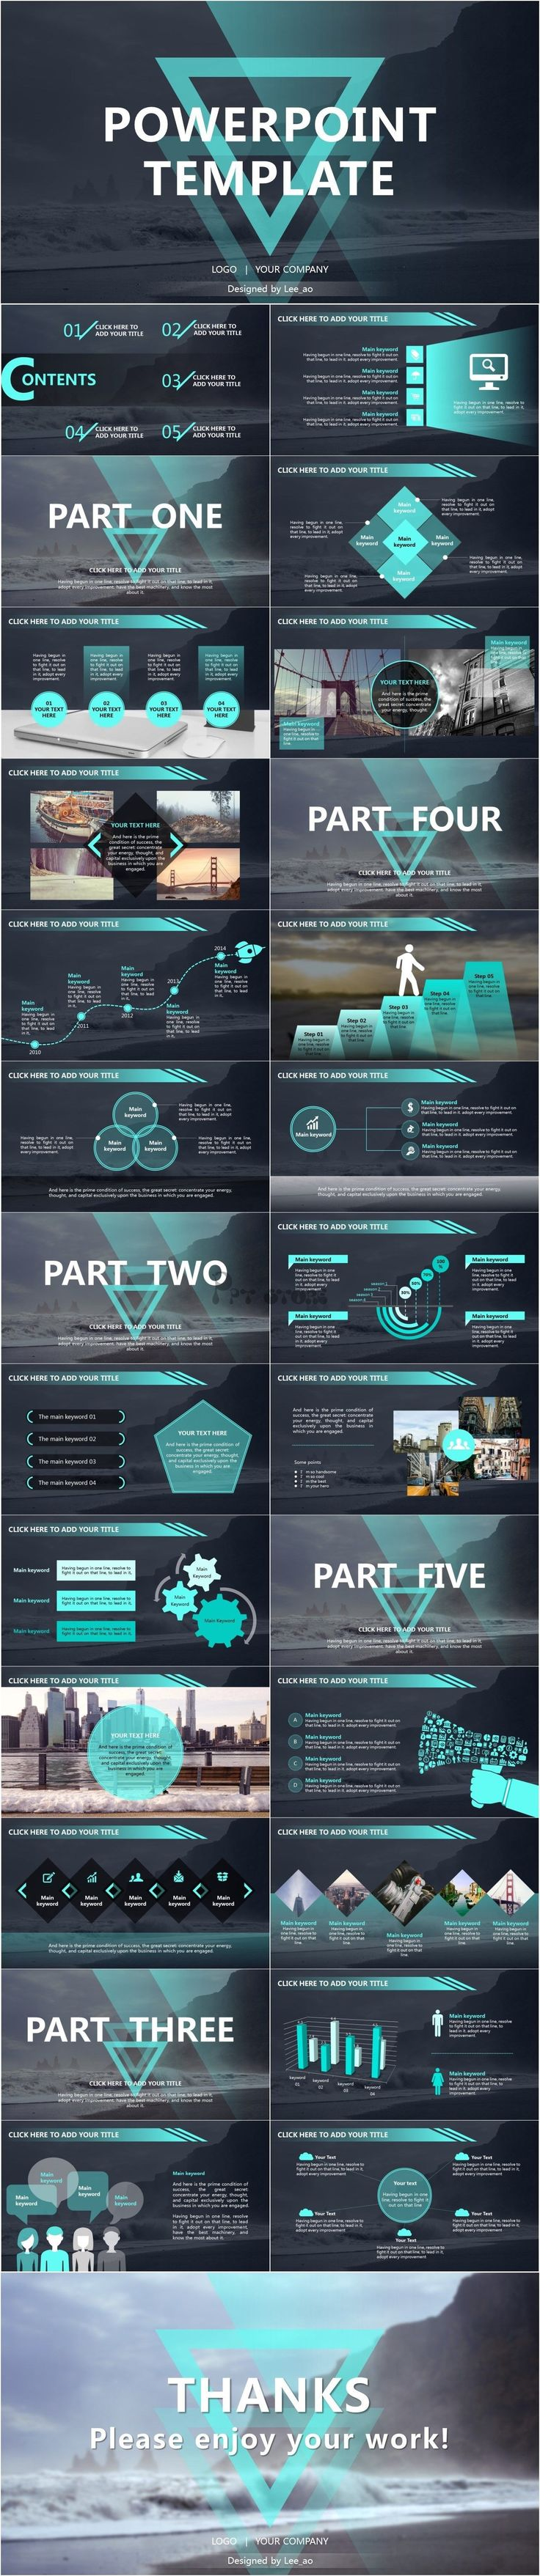 PowerPoint template,download:http://www.pptstore.net/shangwu_ppt/12173.html